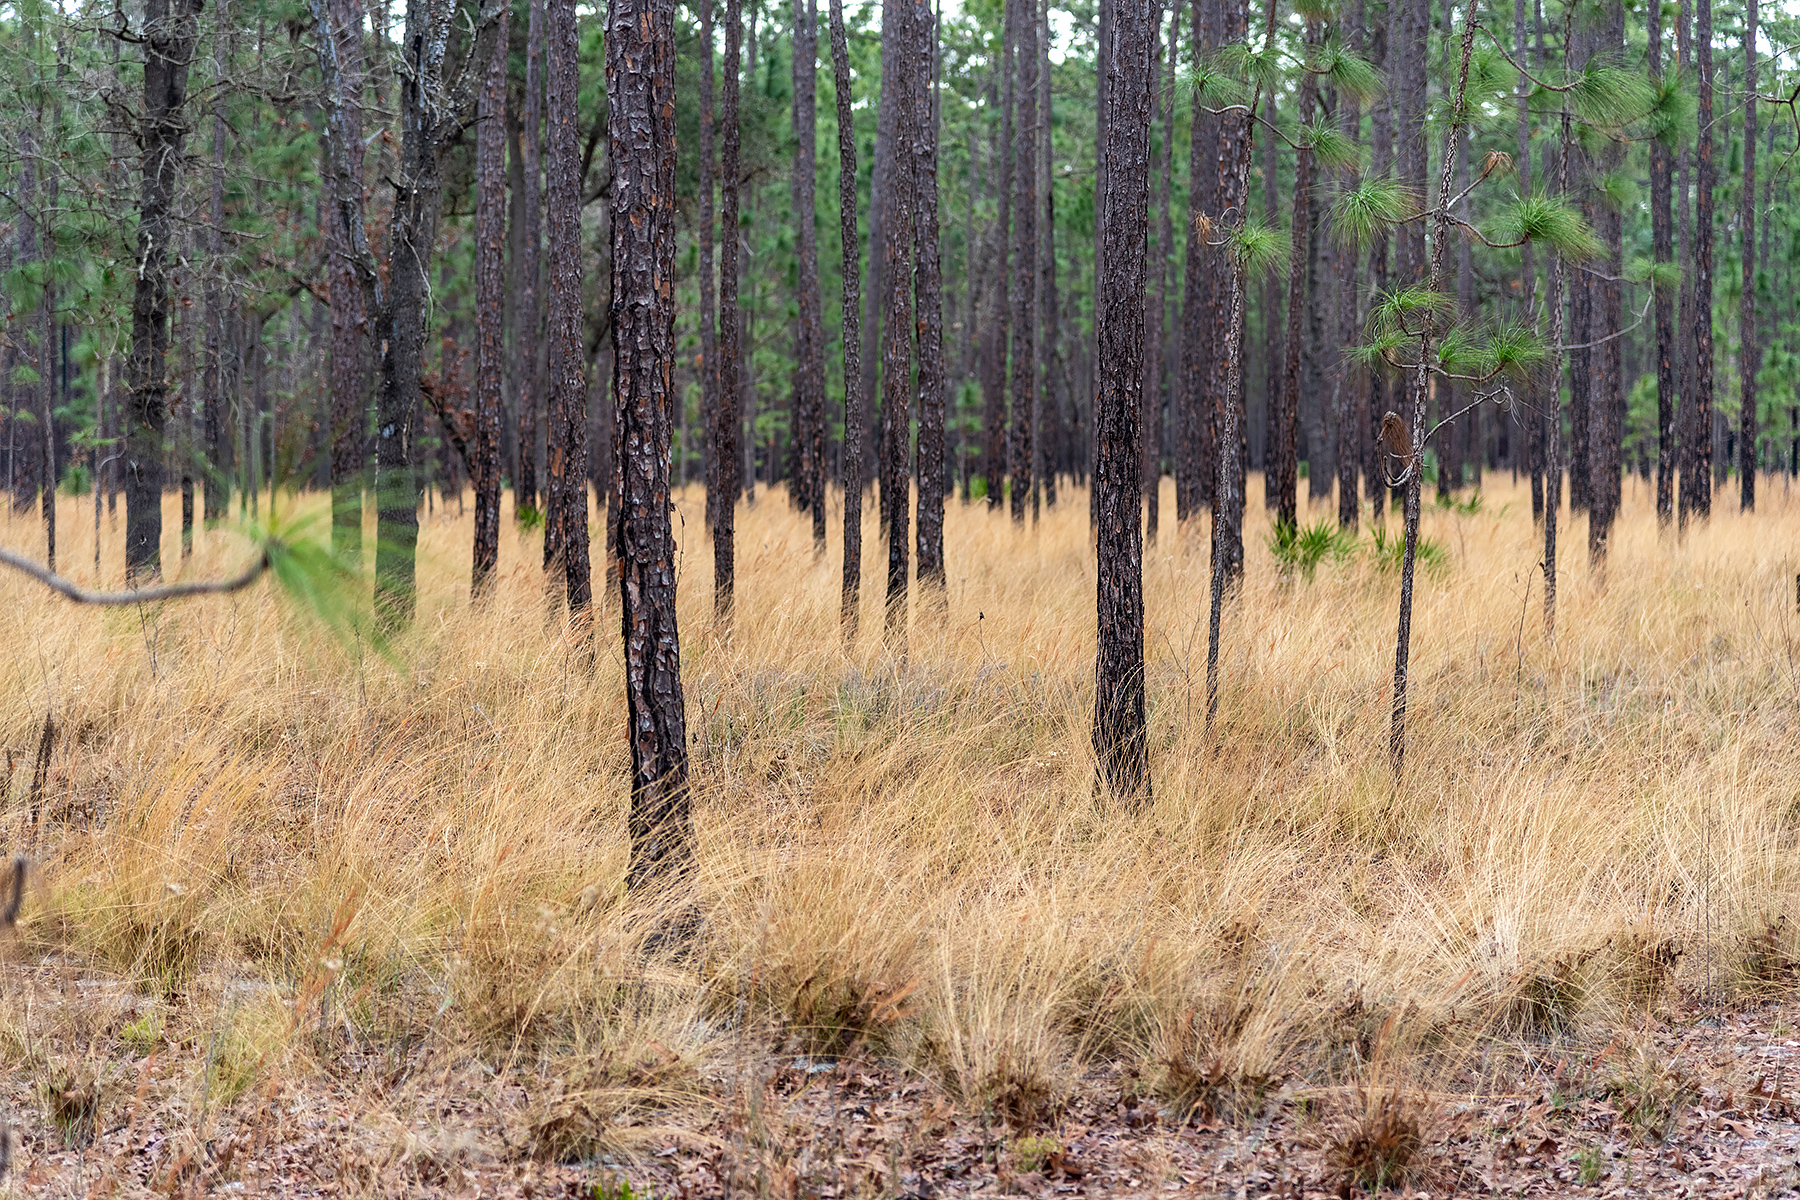 Wiregrass growing in a pine forest